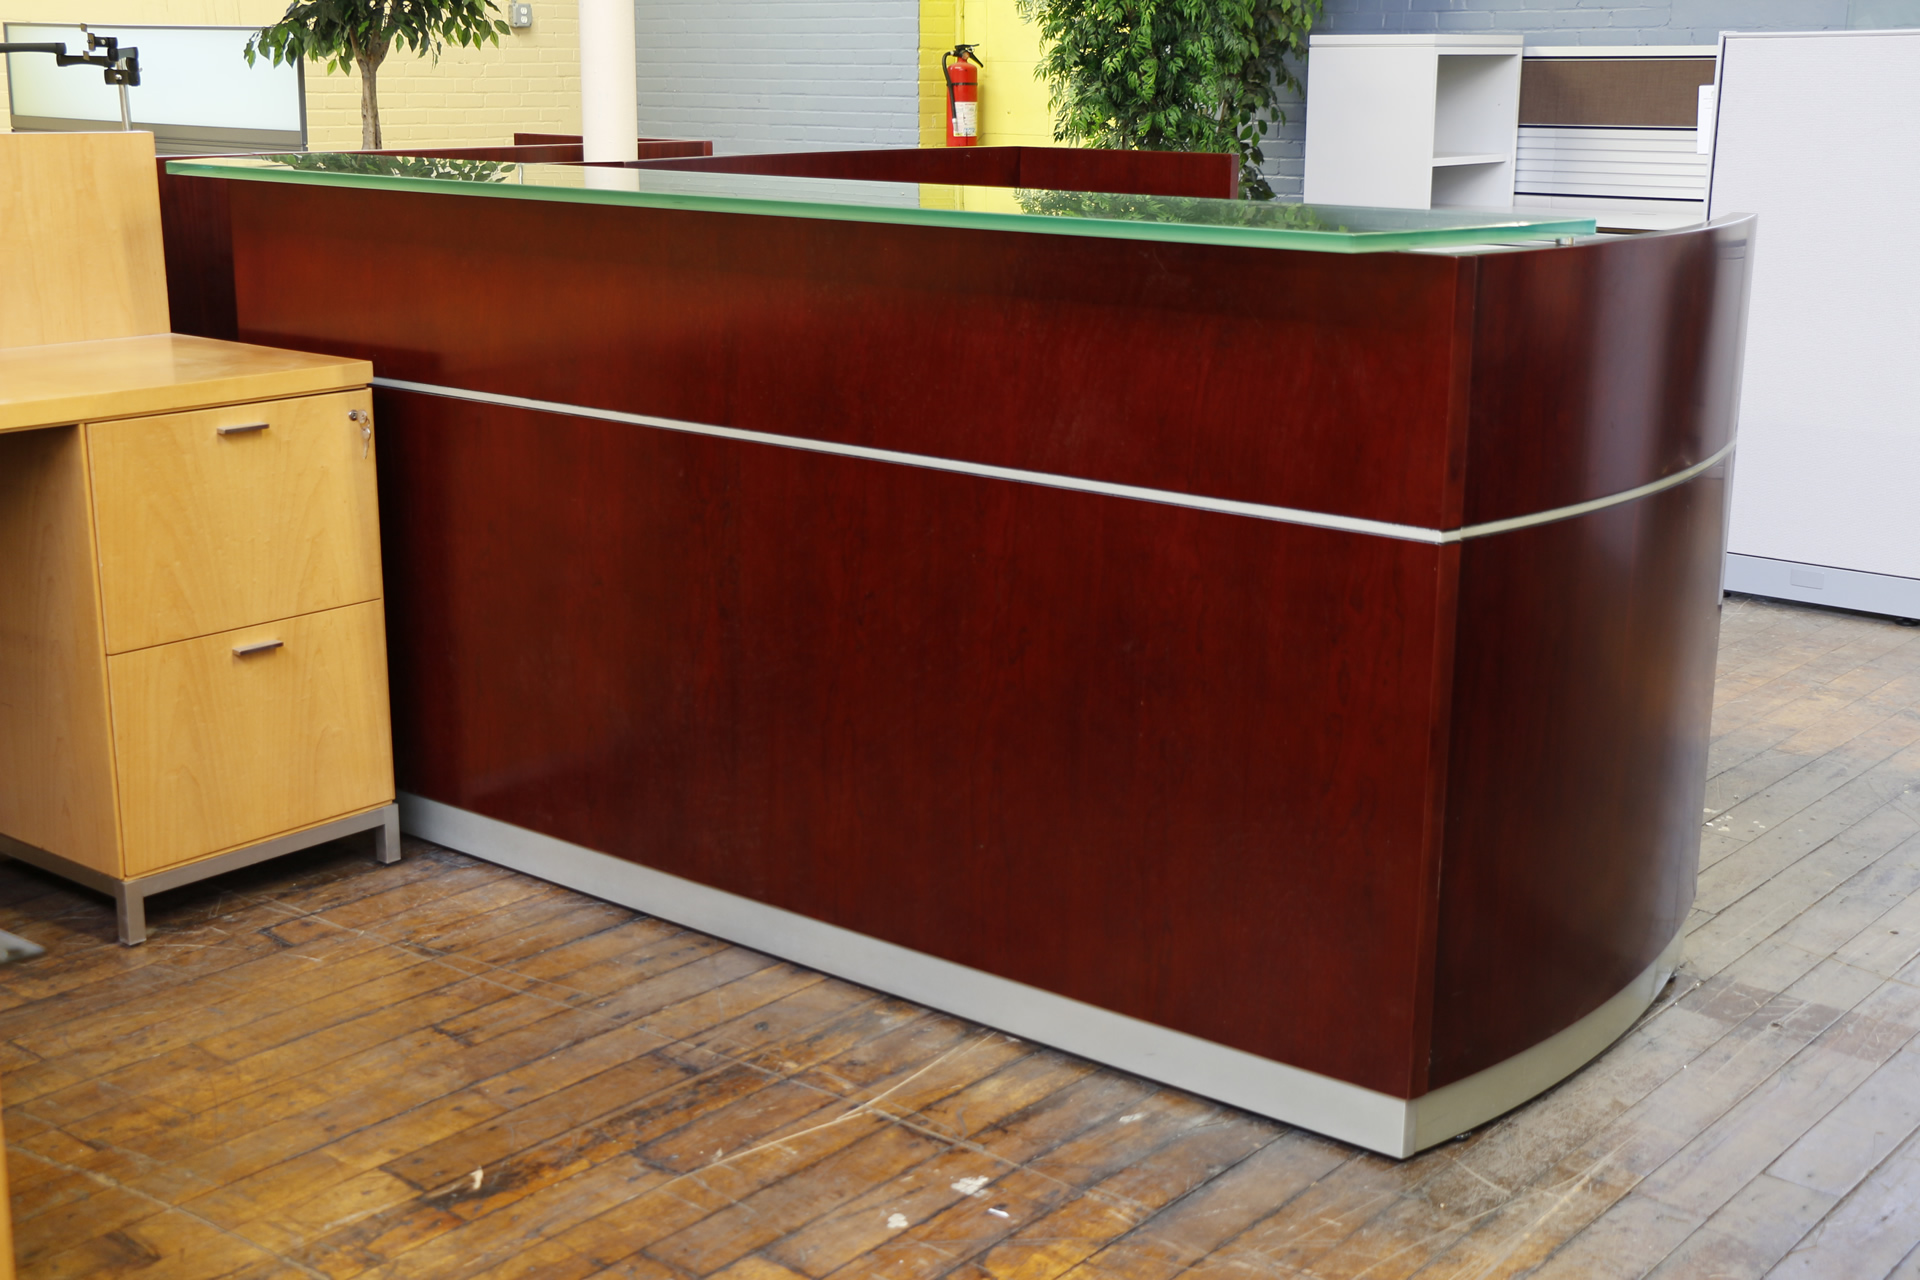 Peartreeofficefurniture Mg 4997 Jpg Mayline Napoli Reception Desk